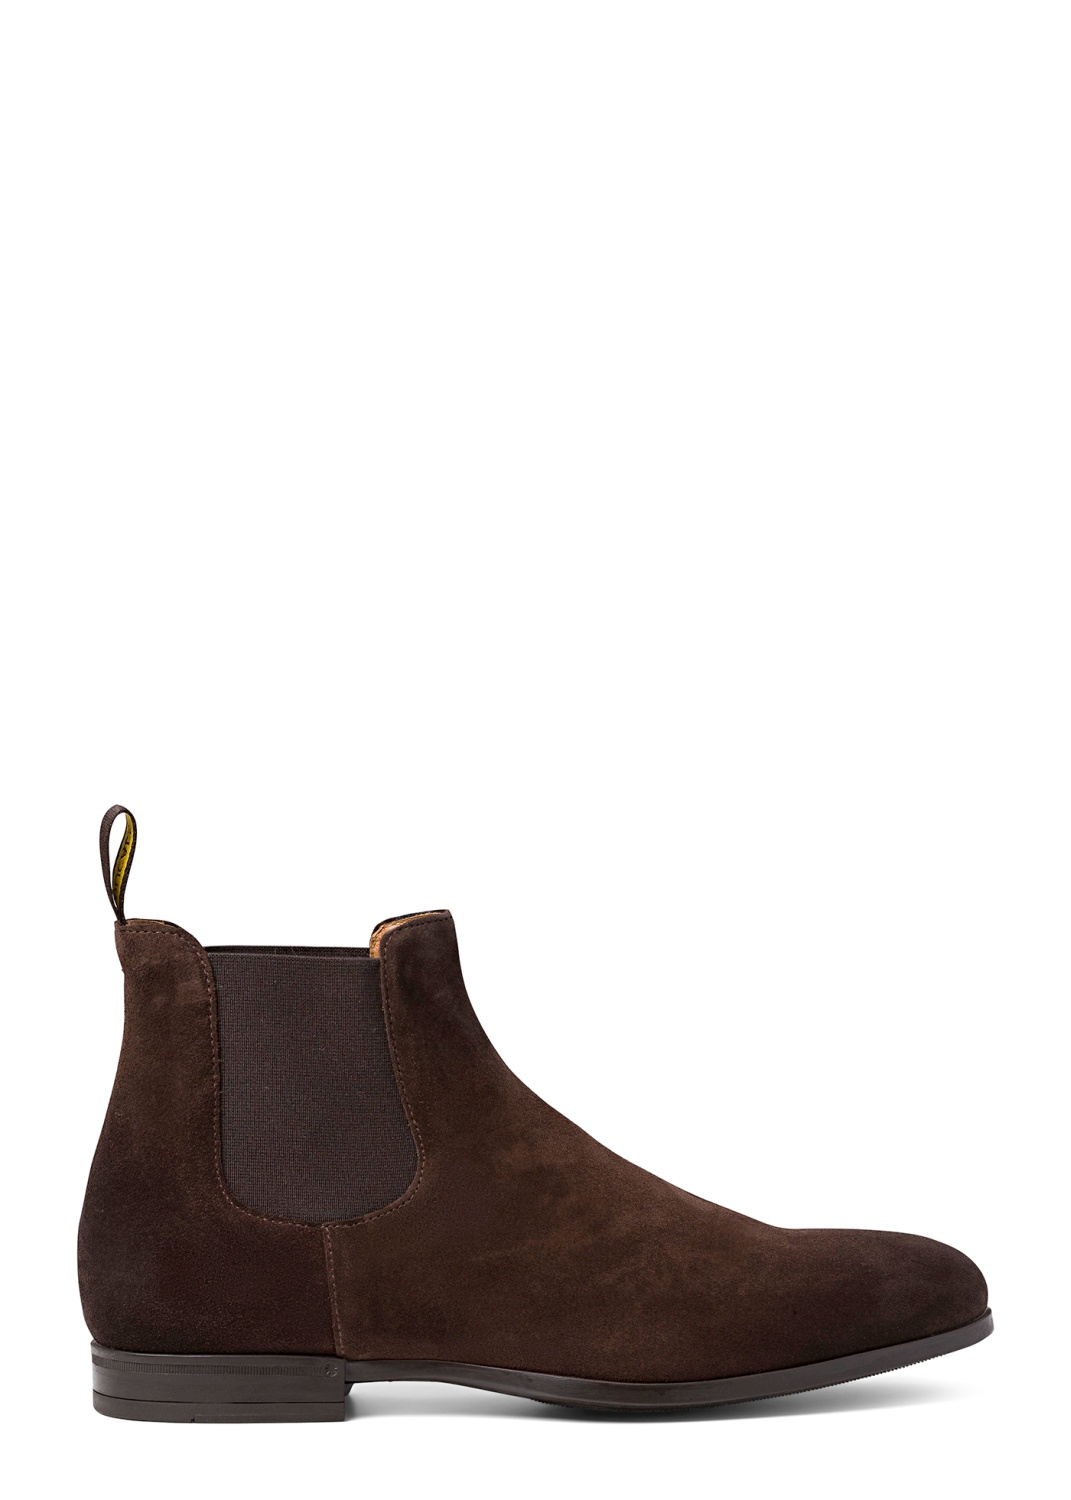 CHELSEA BOOT image number 0